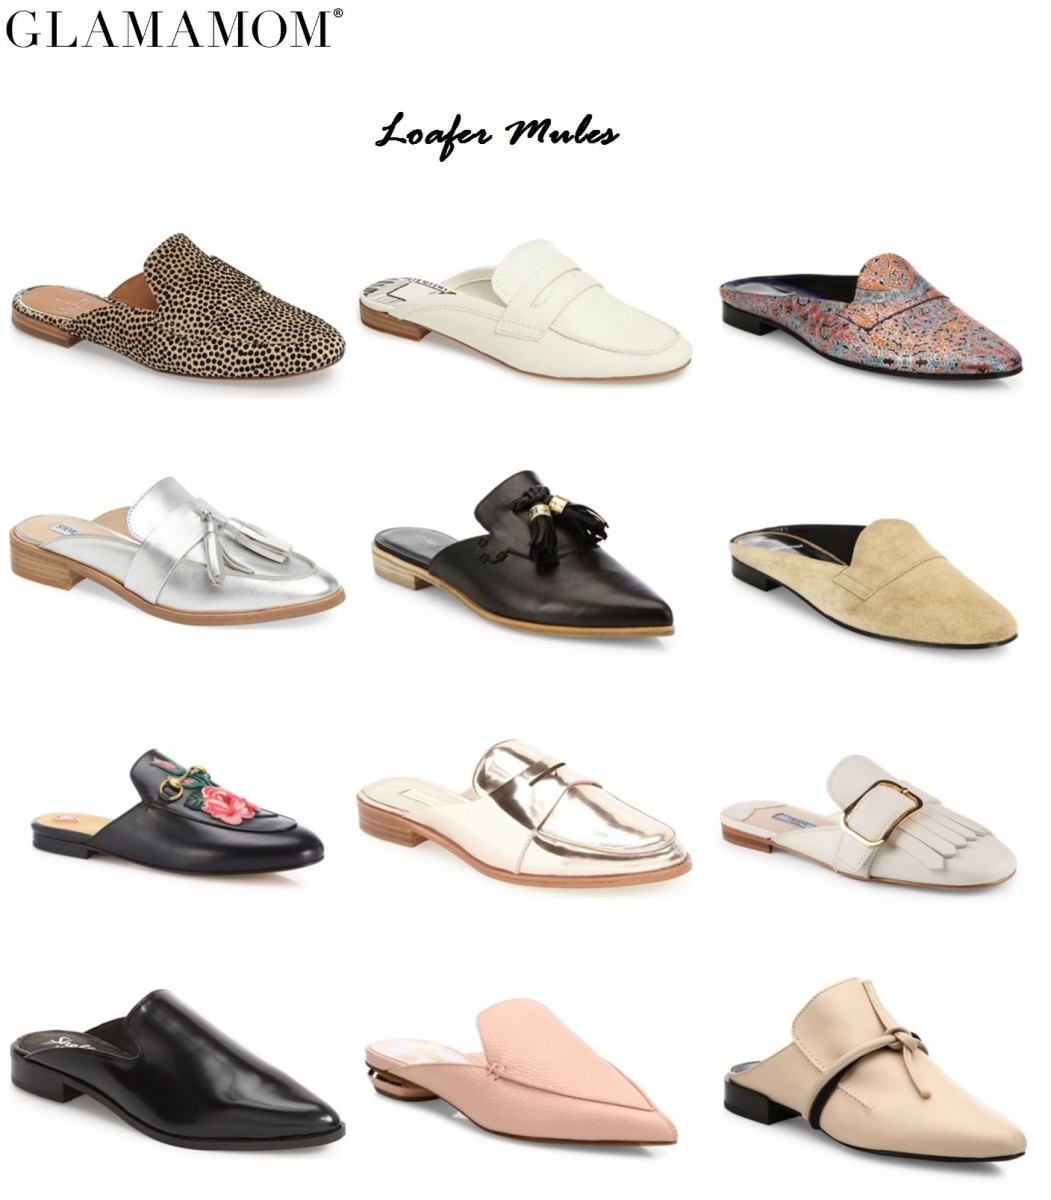 loafer mules.jpg